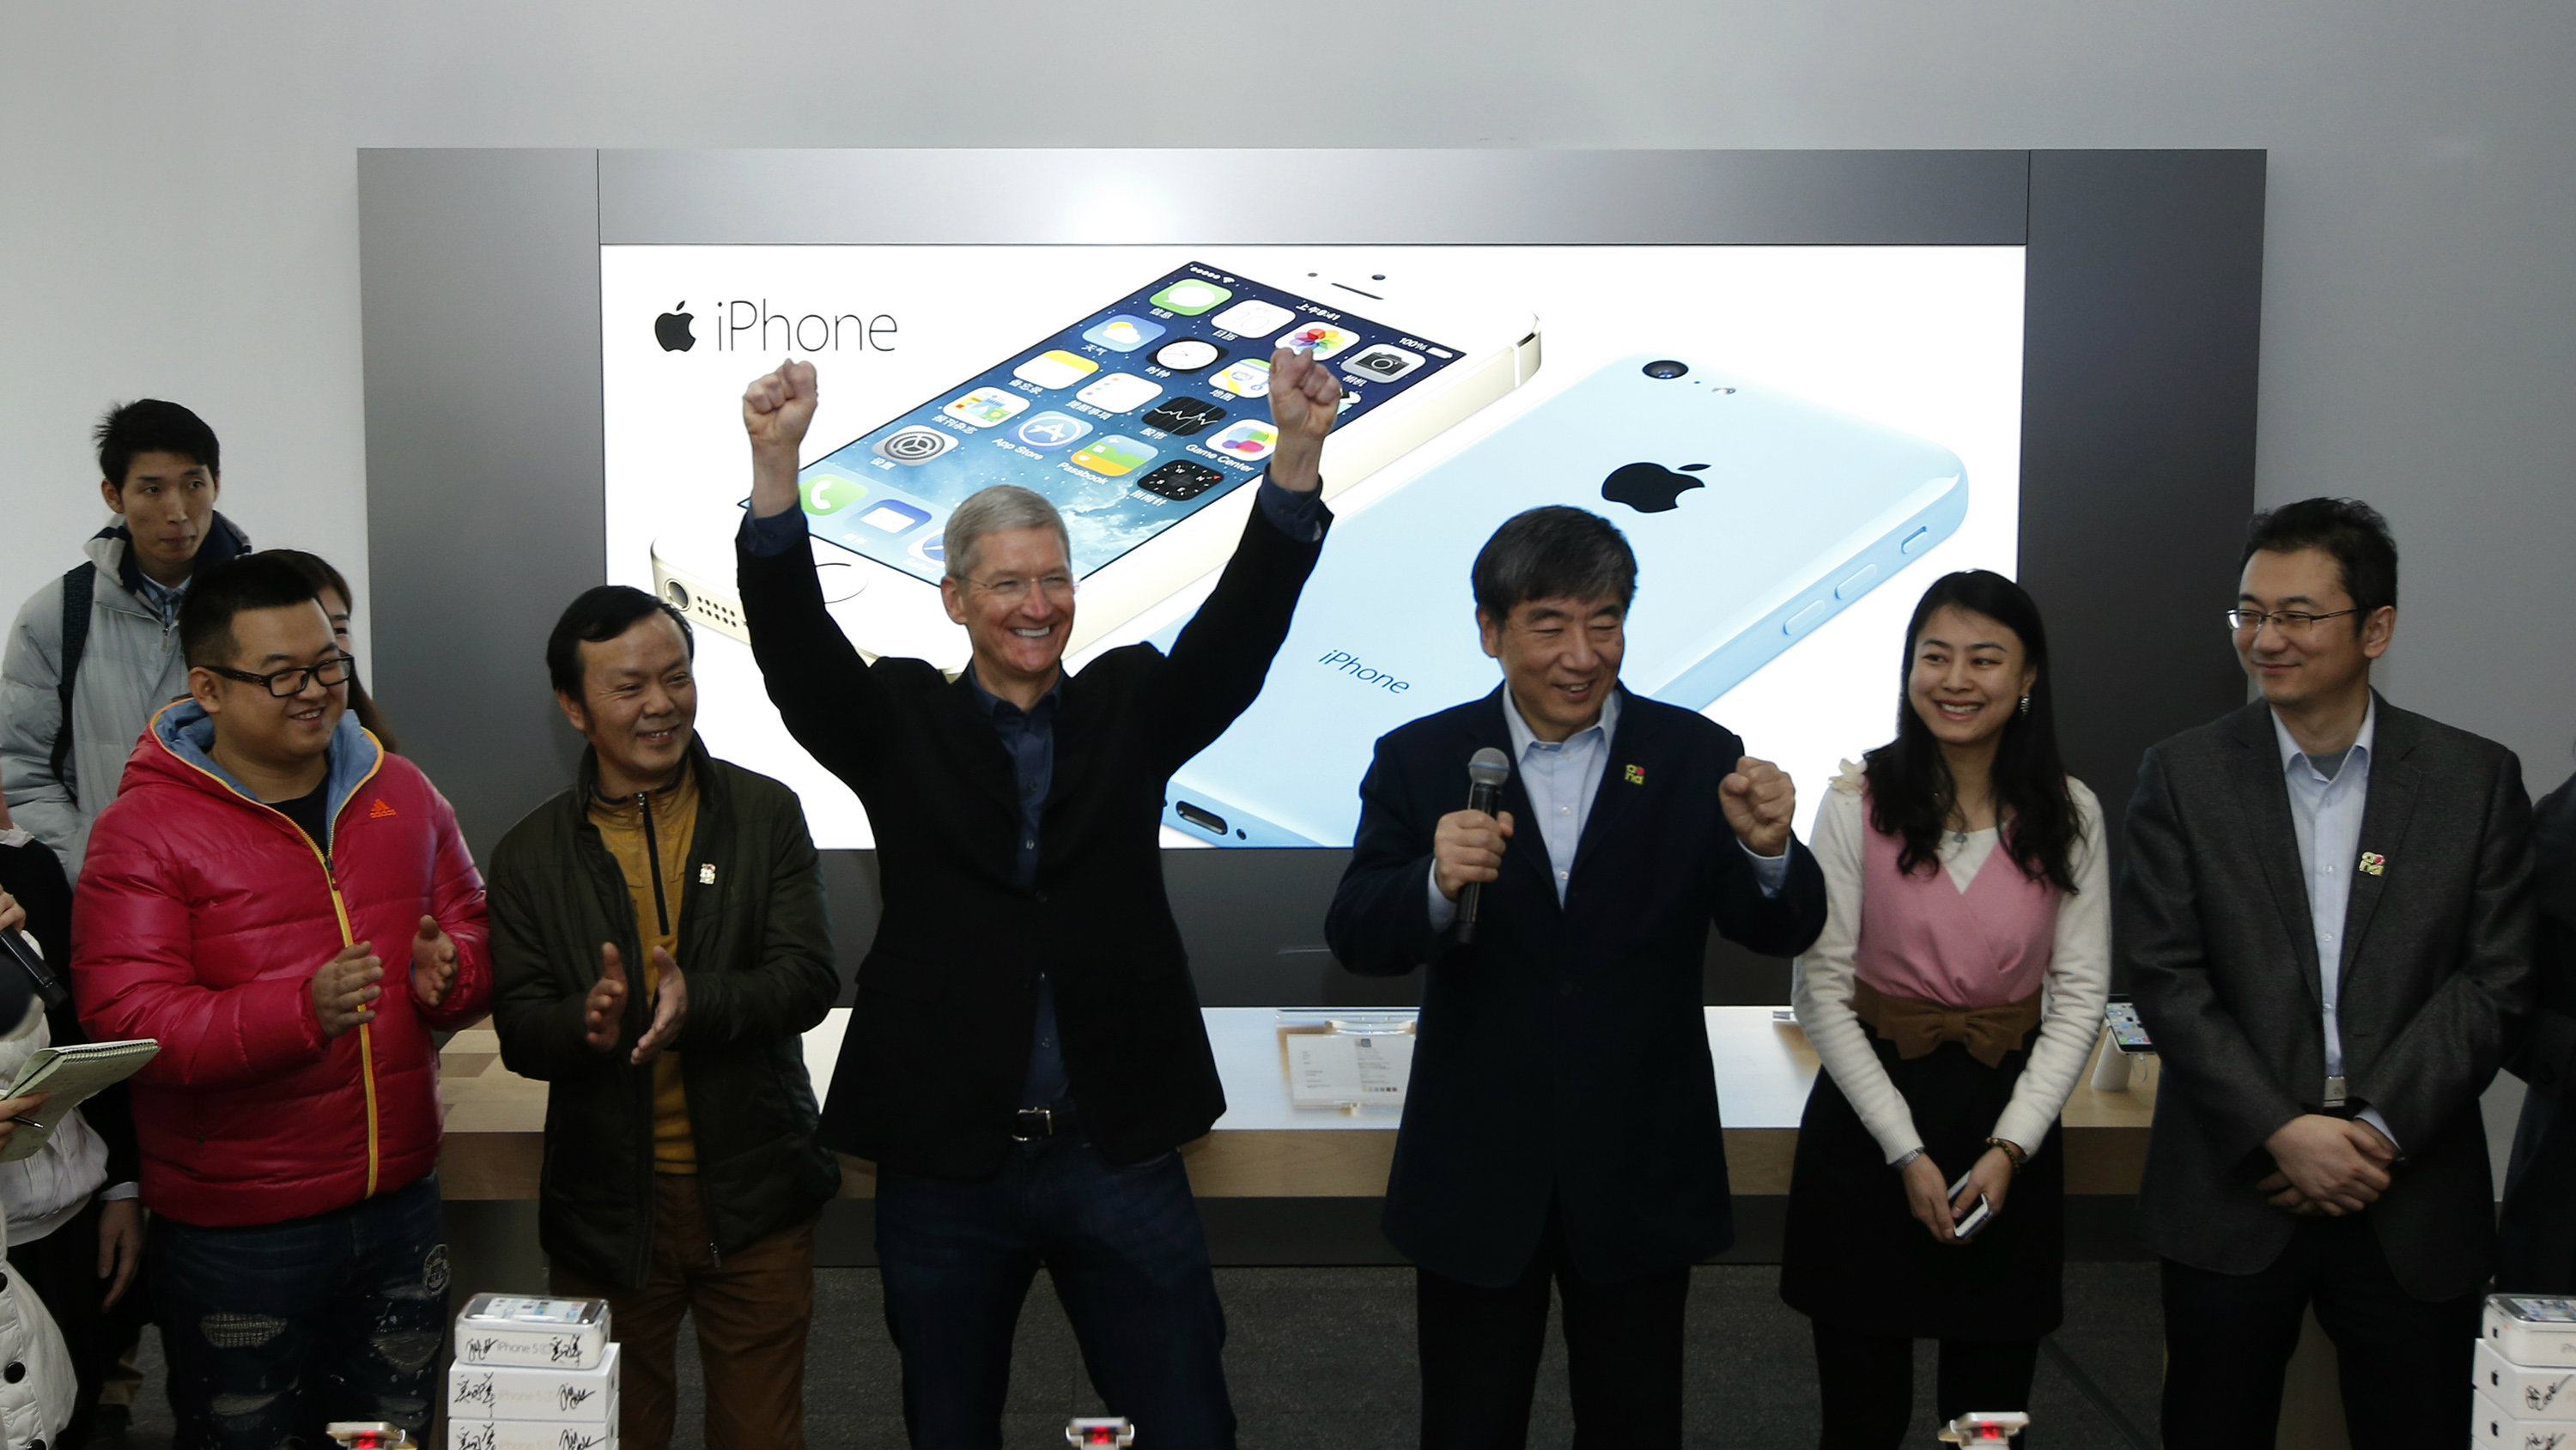 DATE IMPORTED:January 17, 2014Apple Inc.'s CEO Tim Cook (3rd L) reacts next to China Mobile Ltd's Chairman Xi Guohua (3rd R) at an event celebrating the launch of Apple's iPhone on China Mobile's network at a China Mobile shop in Beijing January 17, 2014. Apple Inc is finally launching its iPhone on China Mobile Ltd's vast network on Friday, opening the door to the world's largest carrier's 763 million subscribers and giving its China sales a short-term jolt. REUTERS/